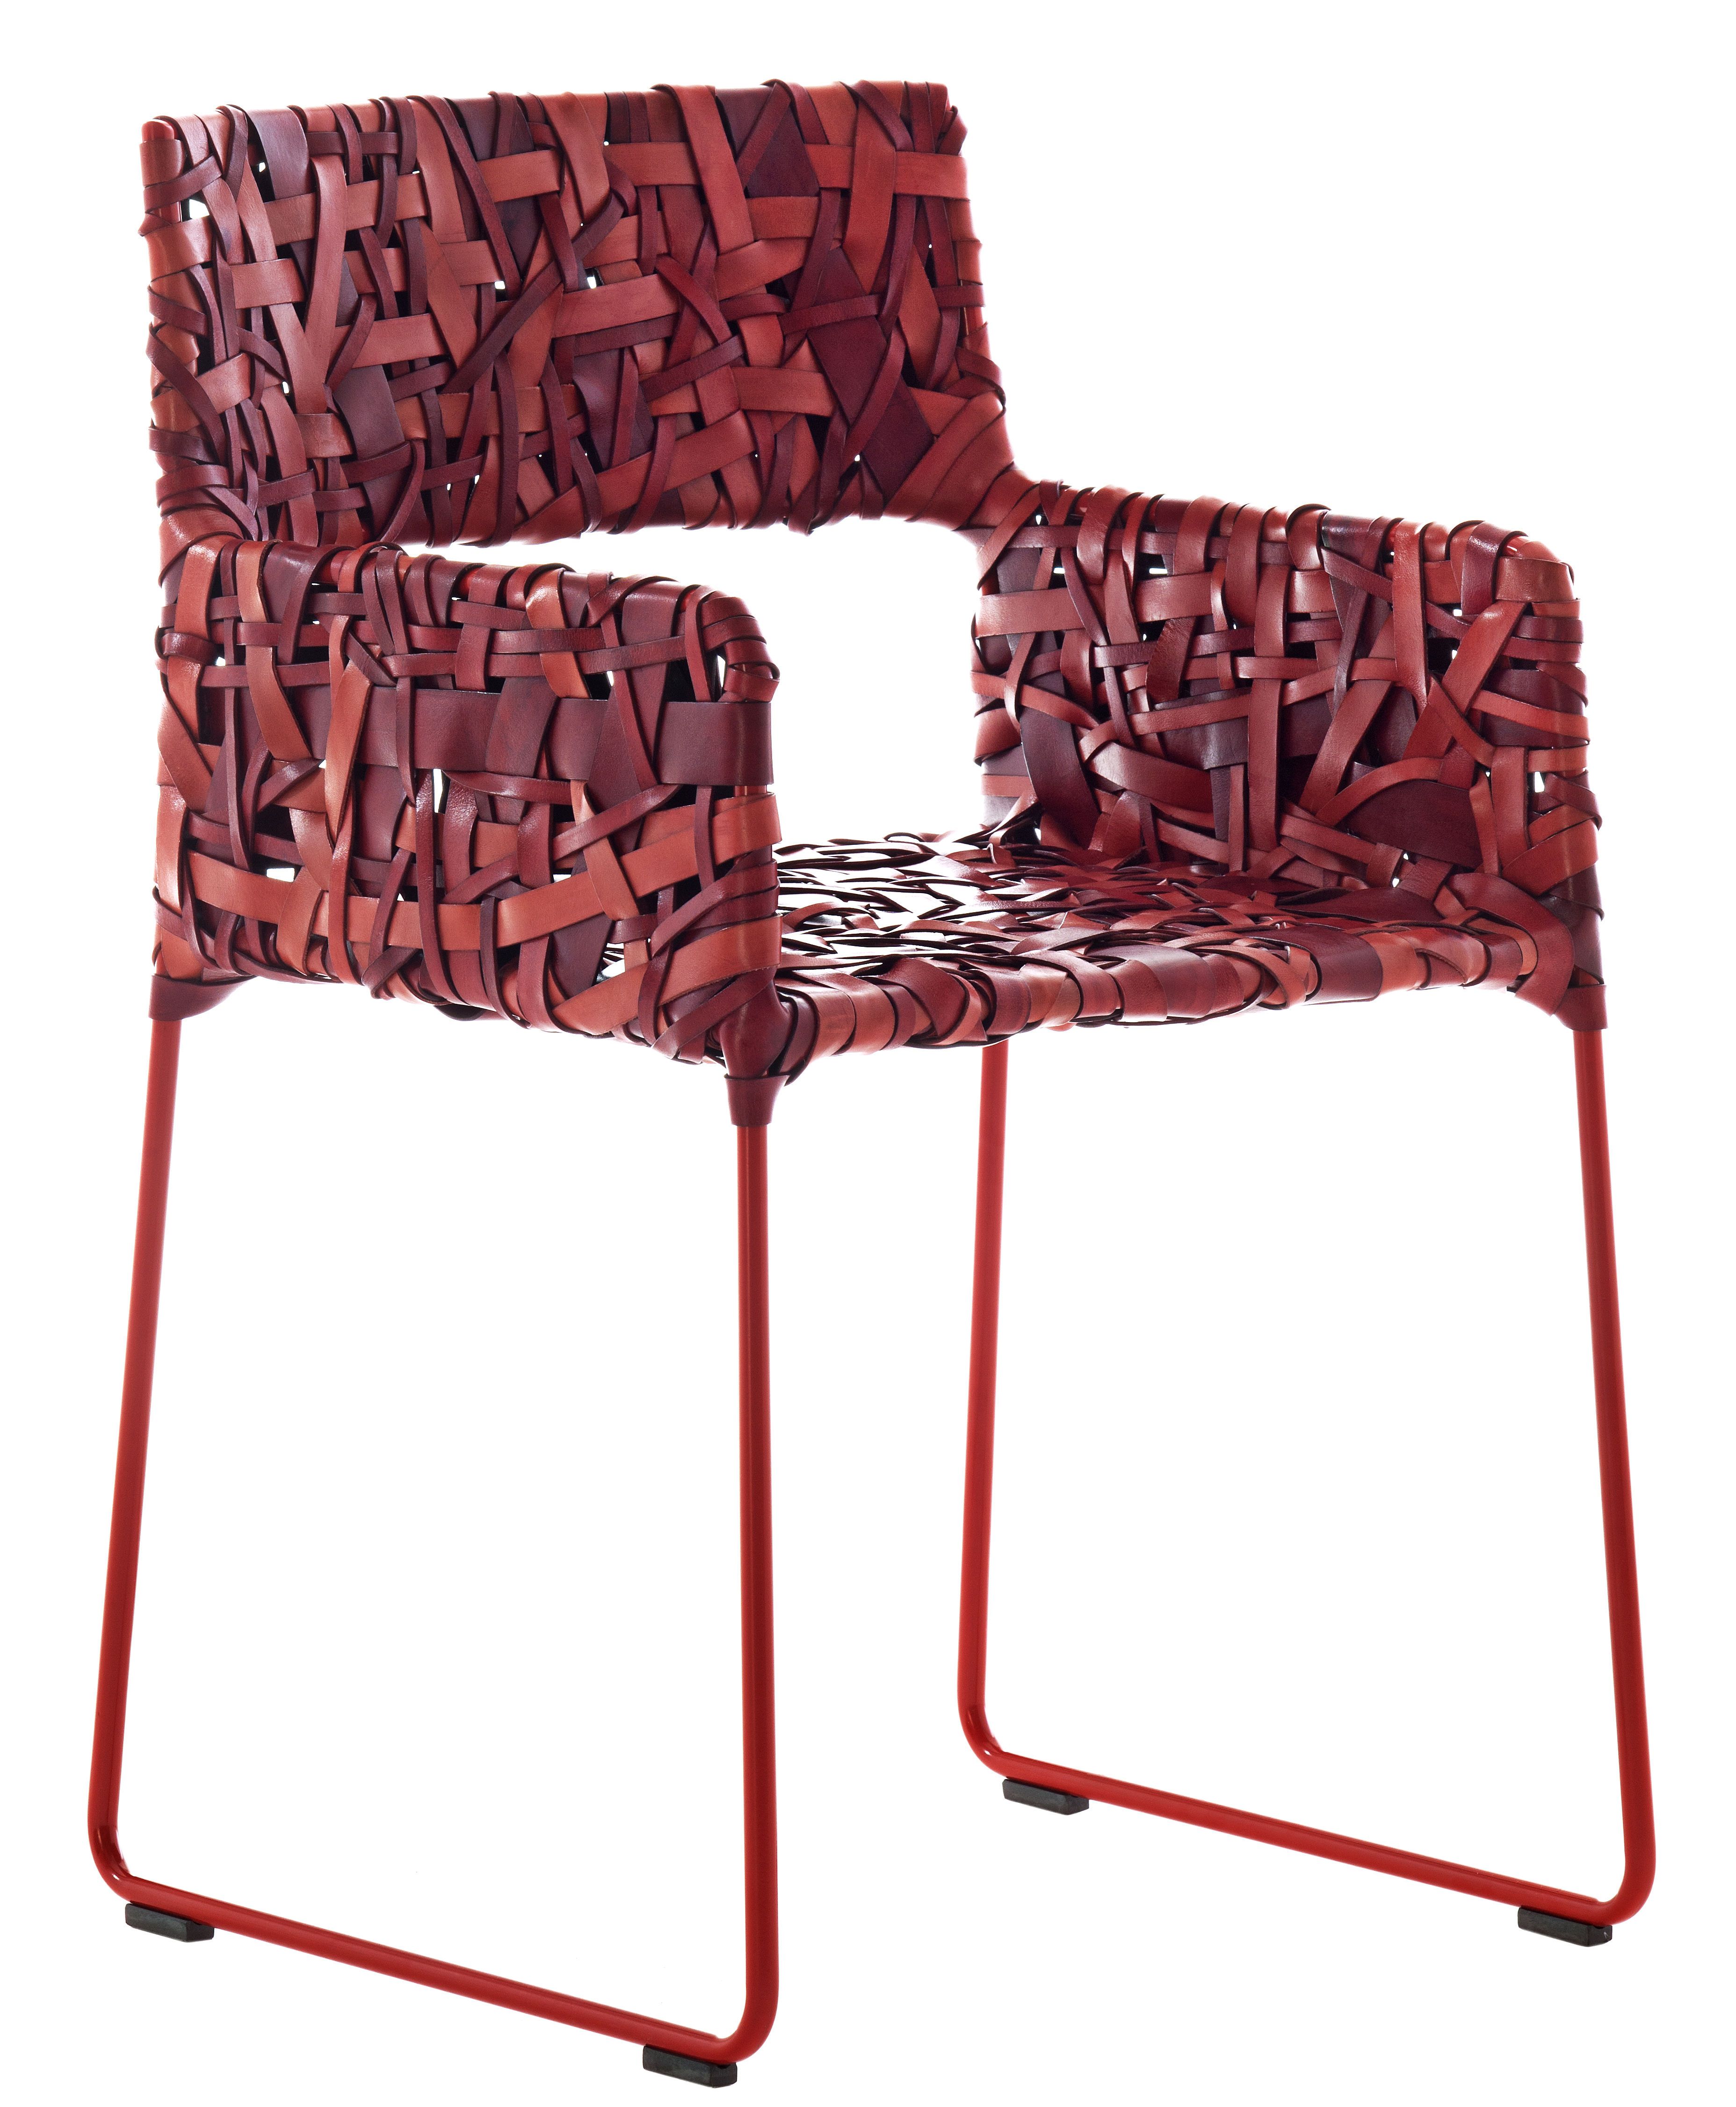 Fauteuil rikka cuir tress main rouge driade - Fauteuil made in design ...